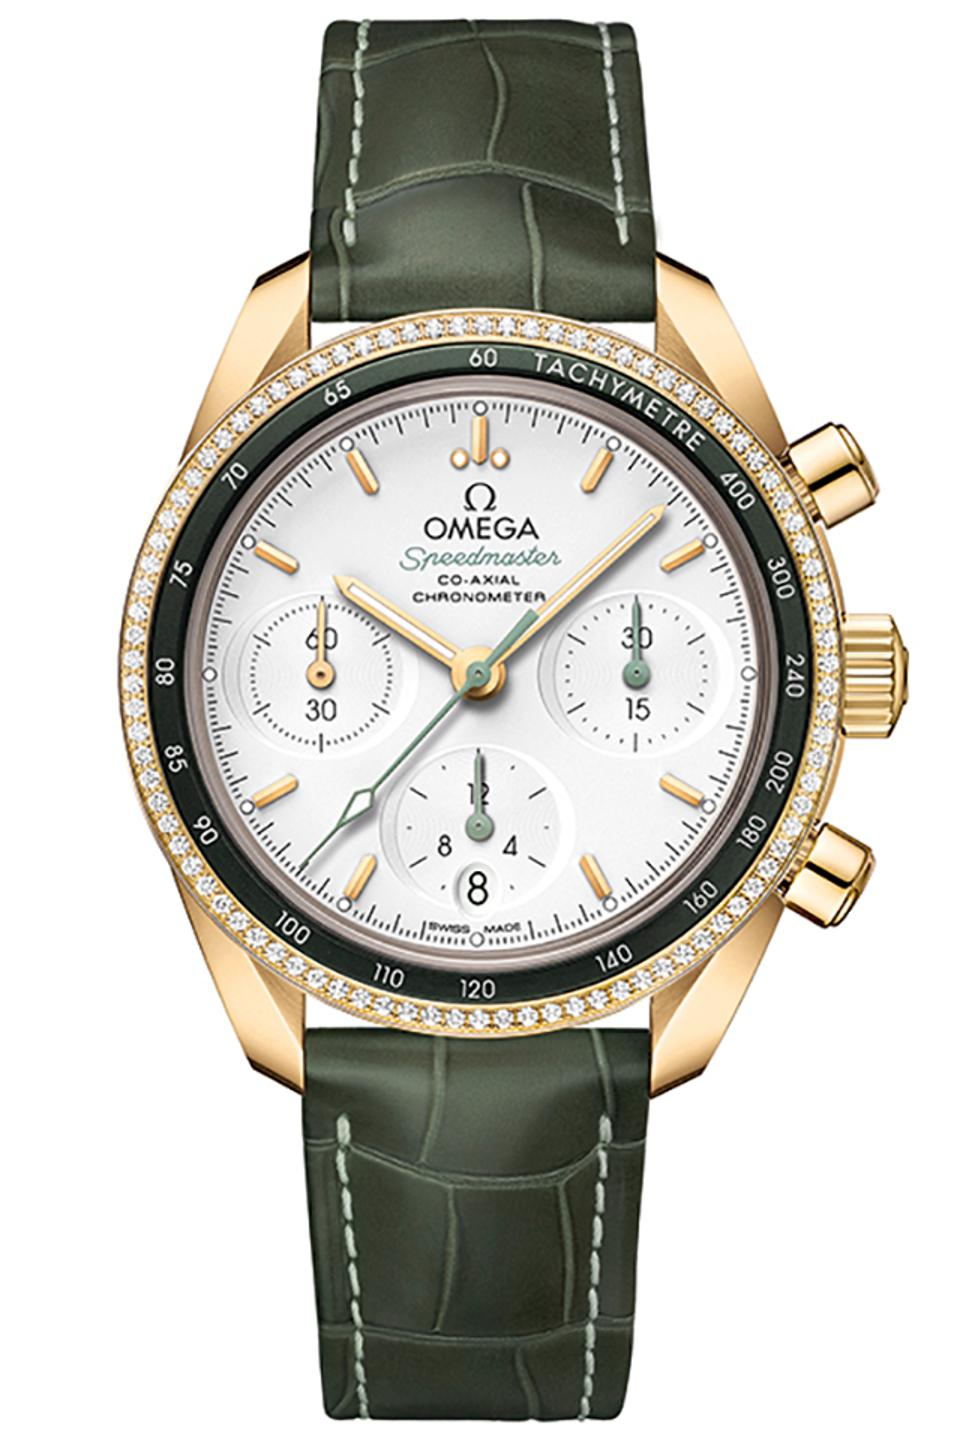 The Omega Speedmaster 38 in 18k yellow gold with 90 diamonds set into the outer bezel.